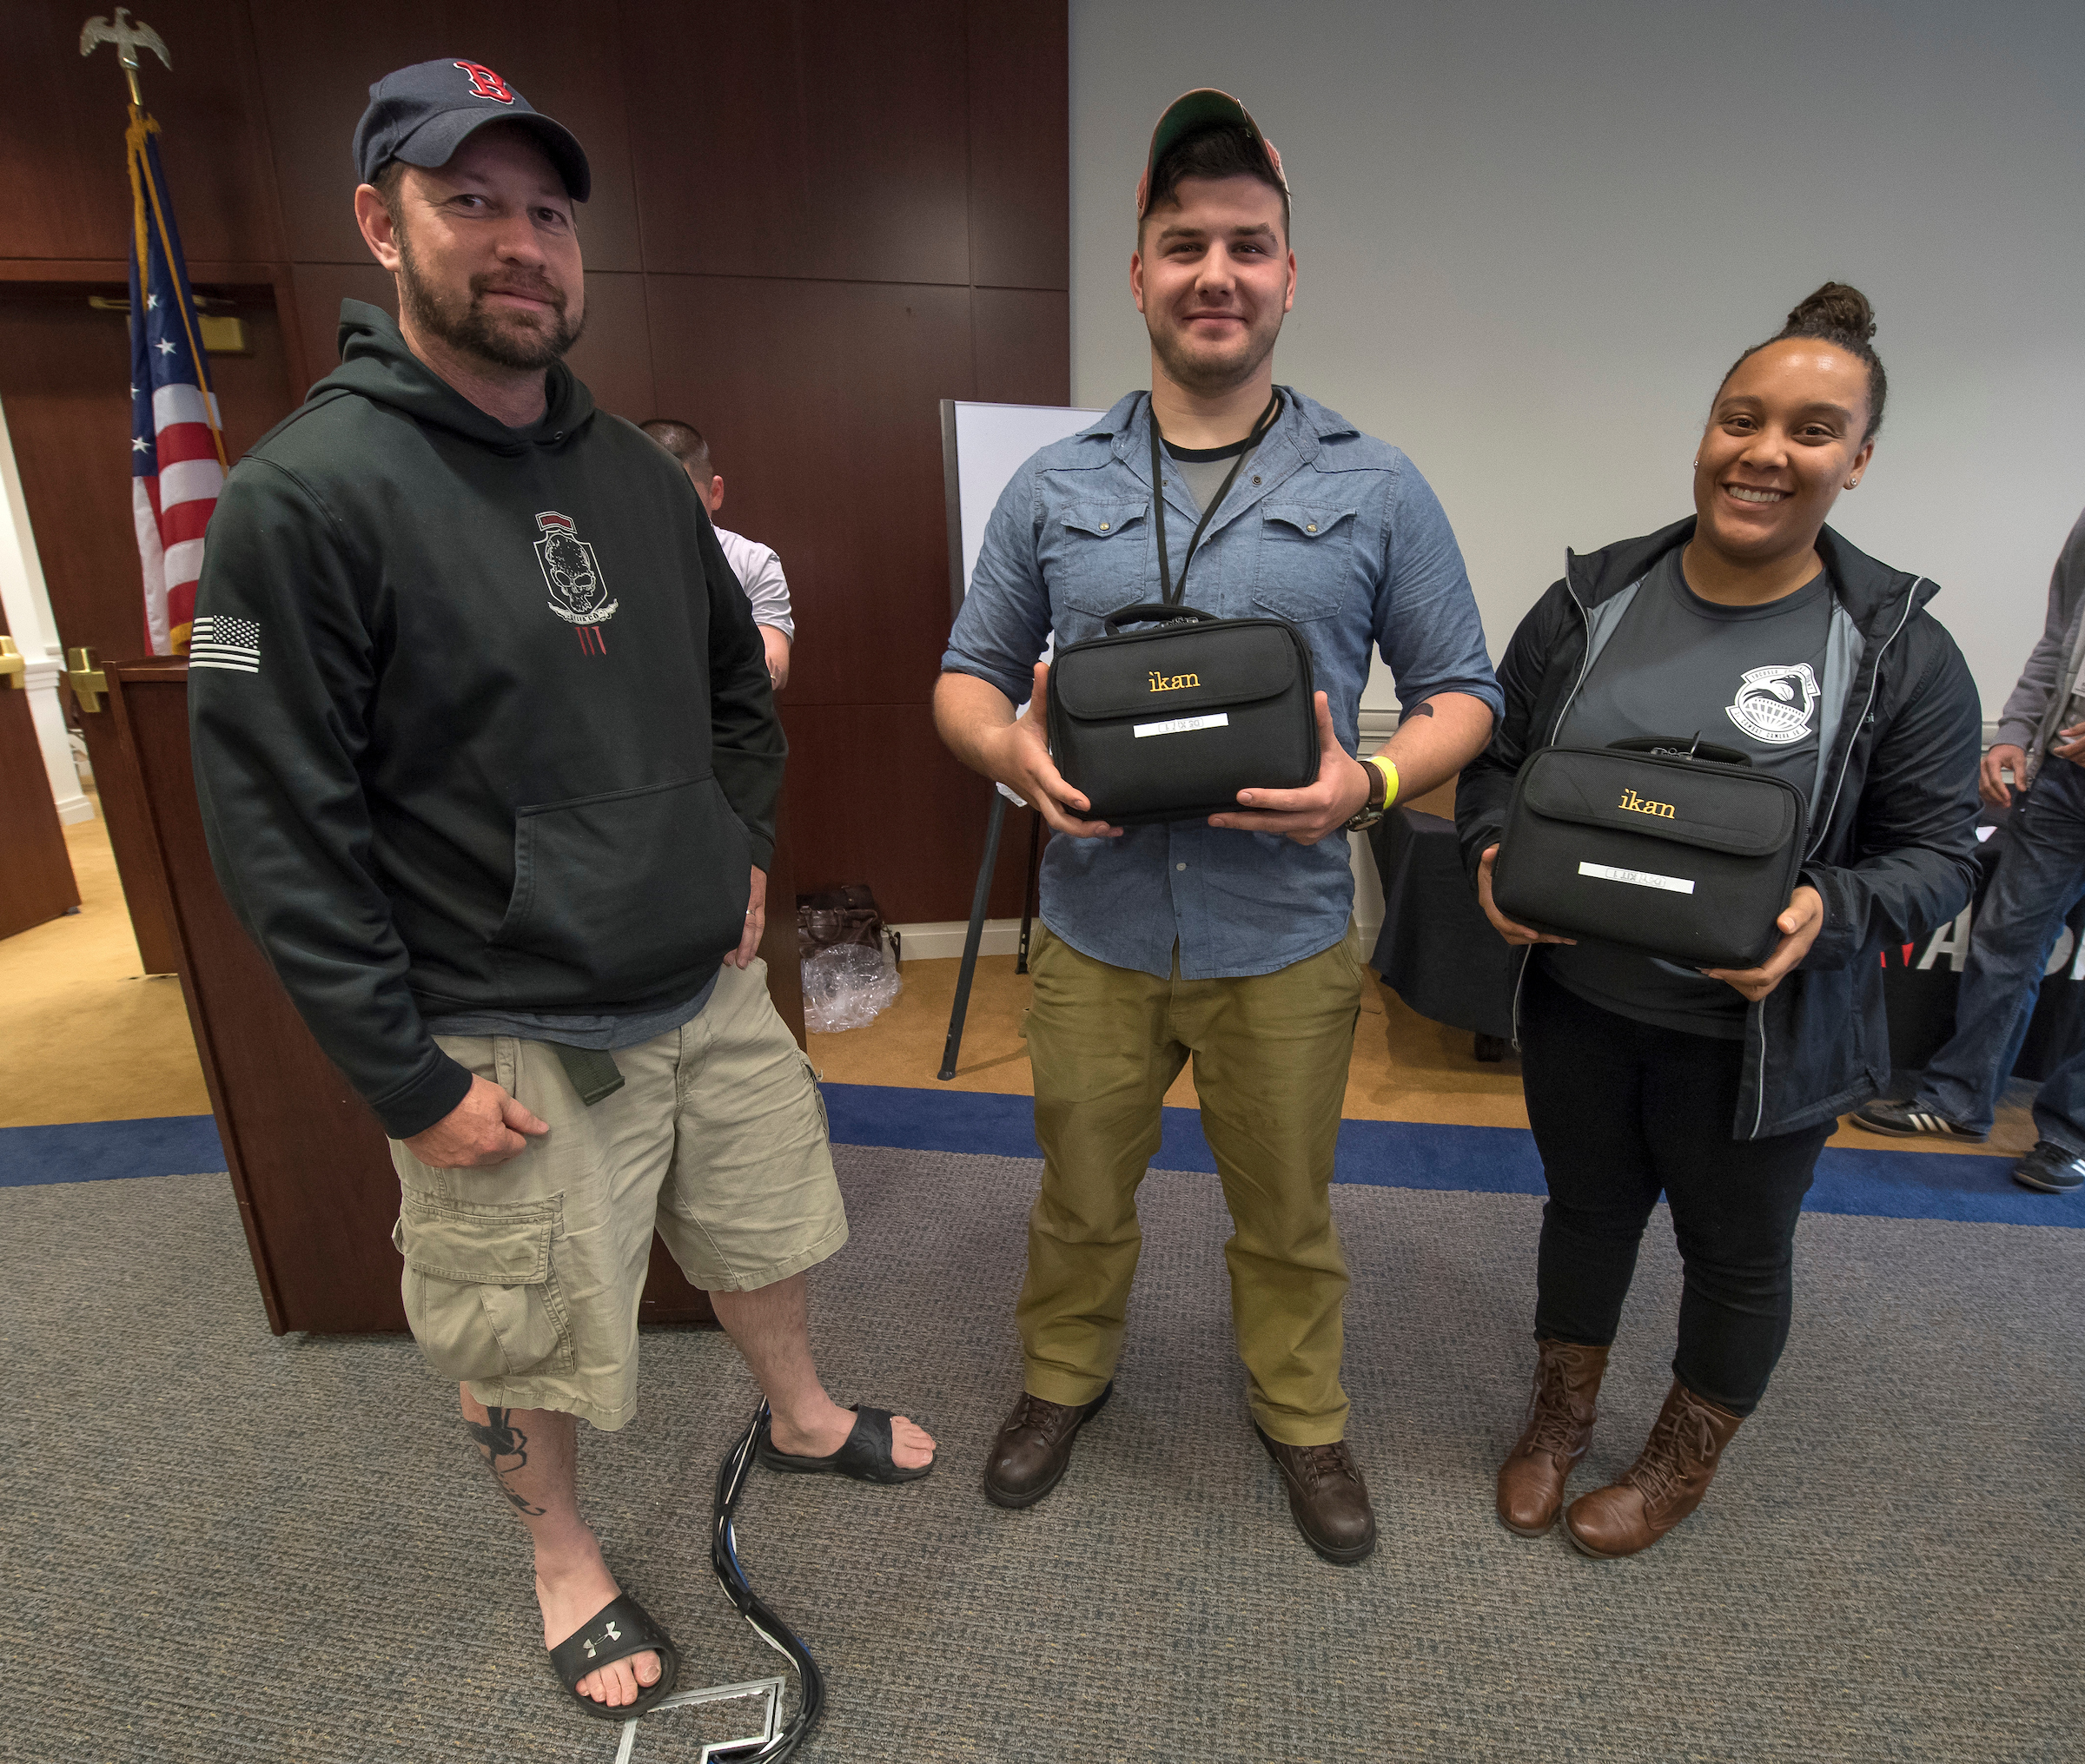 "The CAPRA Award for Best In Editing is awarded to team members Ashley Mikaio and Aaron Bratcher (mentored by Brehl Garza) for their film ""Powerful Divider."" Ashley & Aaron received a new D5W LCD Monitors sponsored by Ikan."